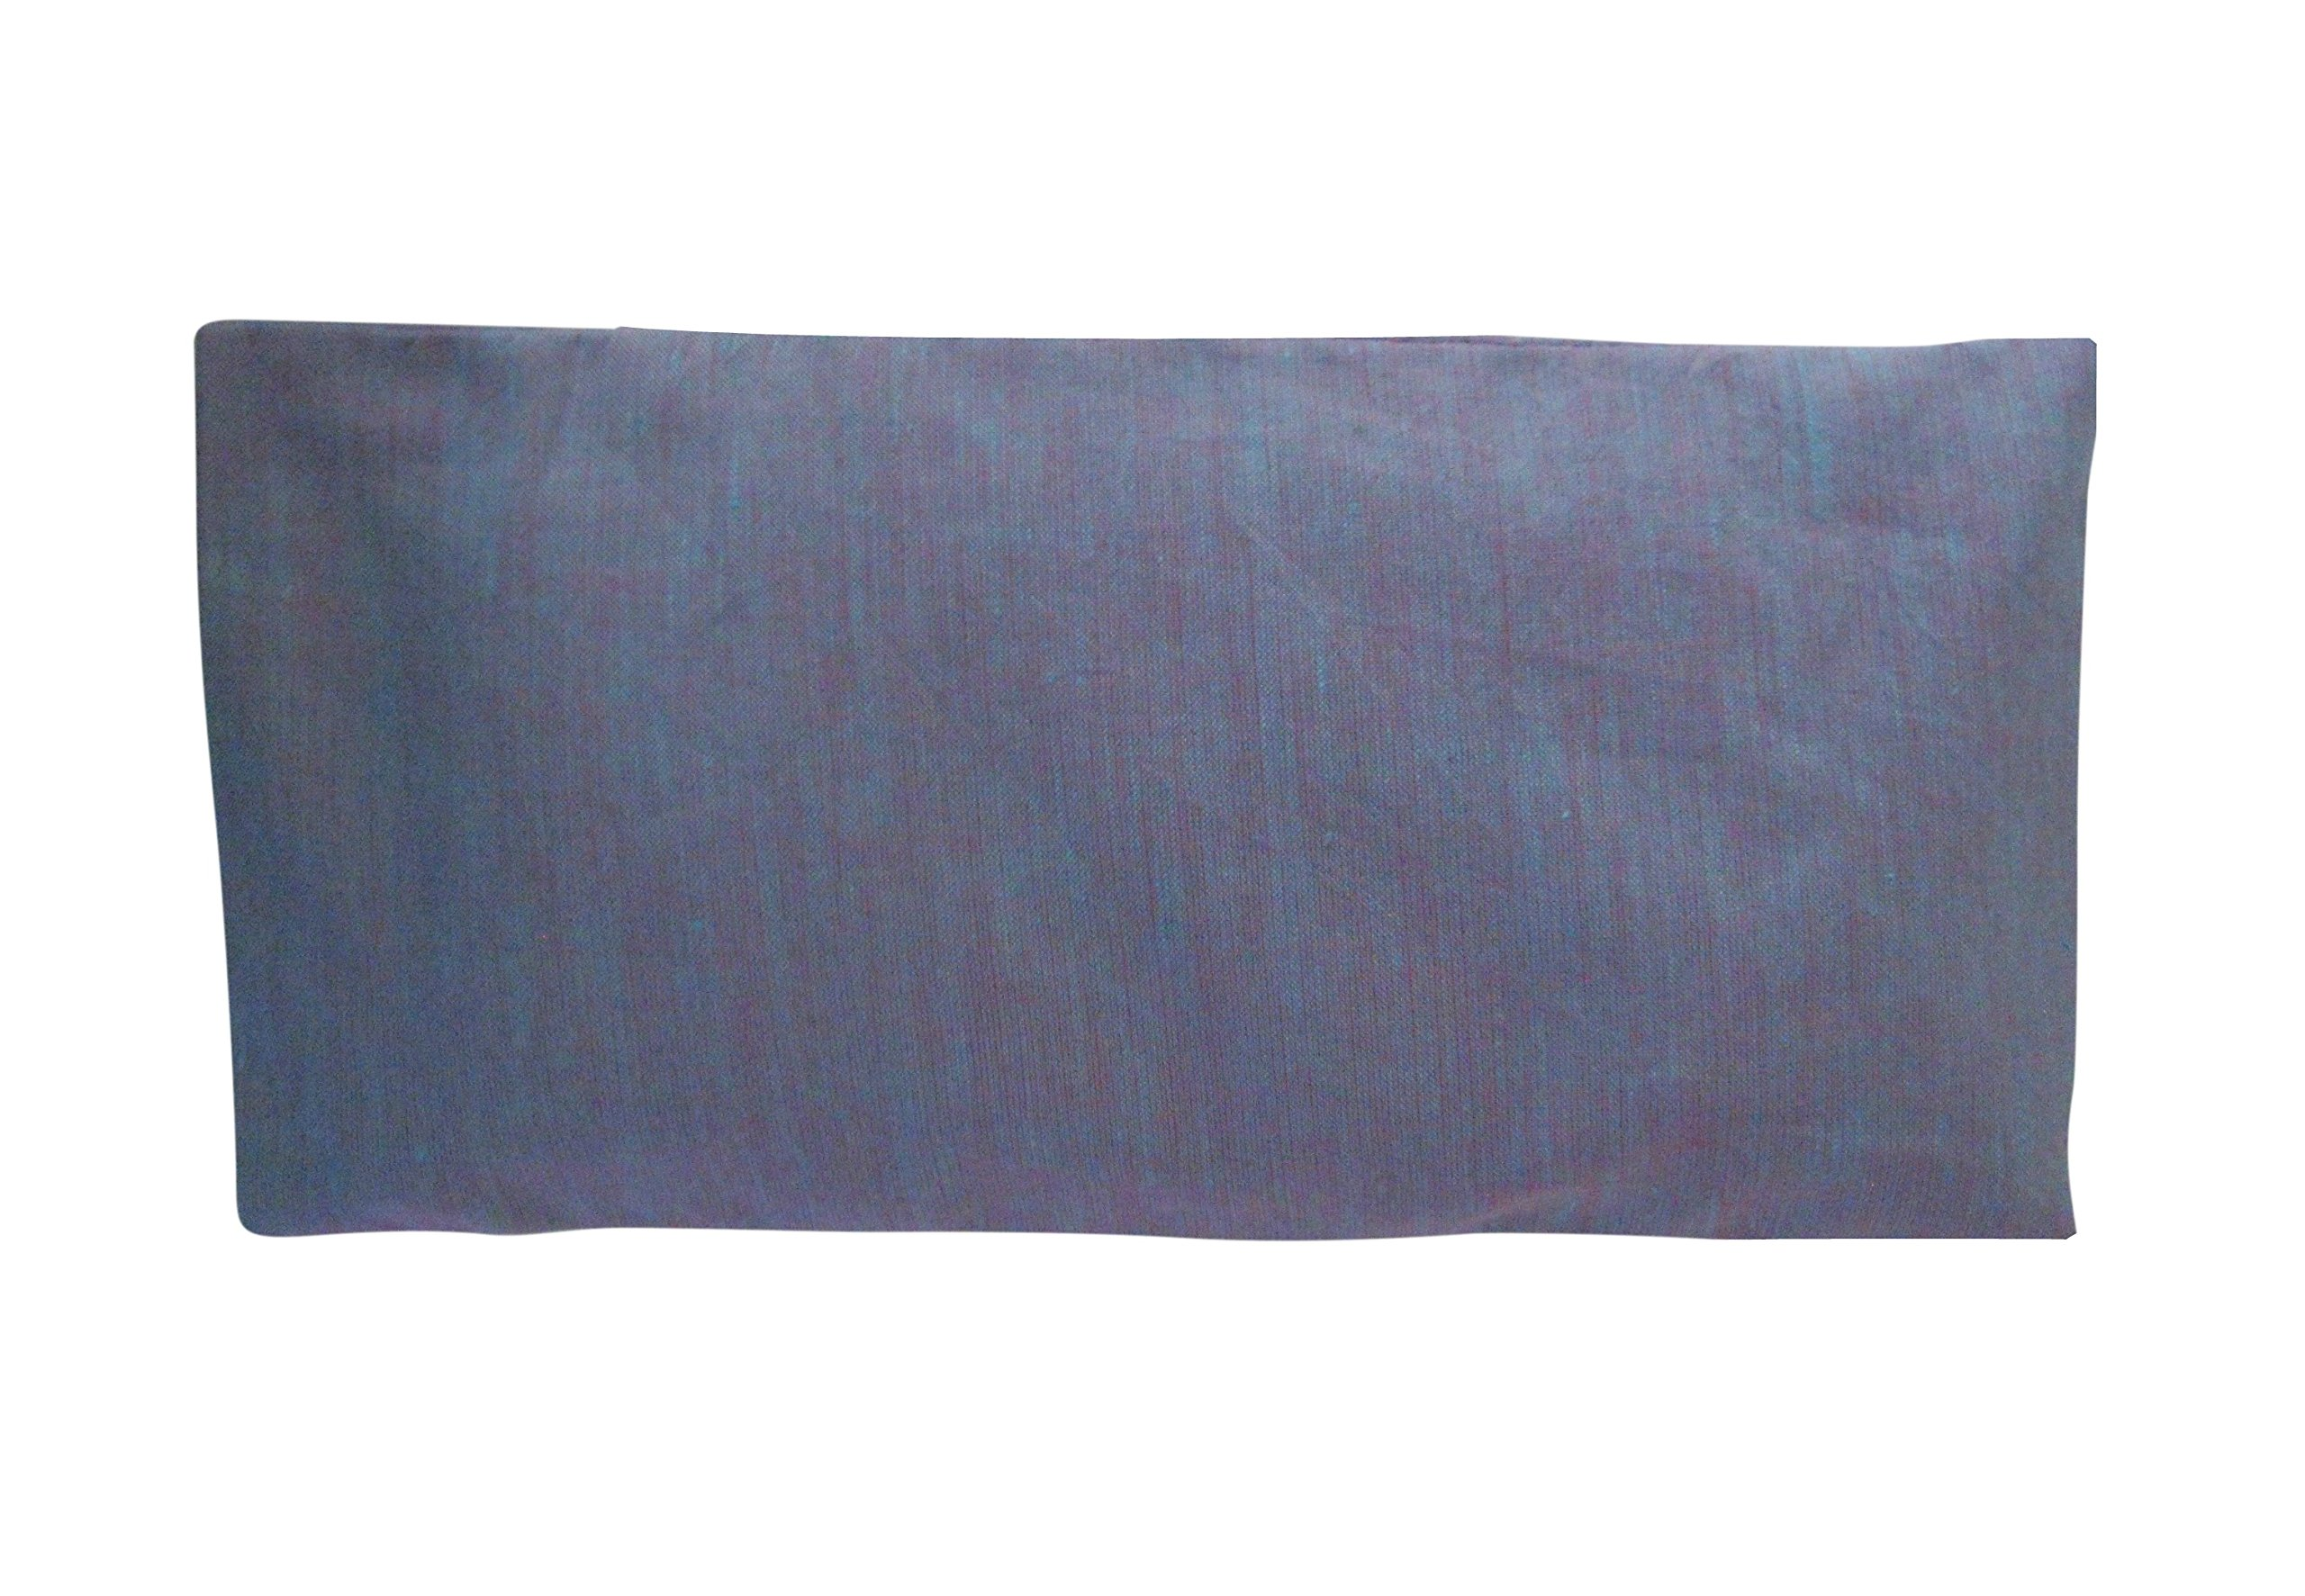 Peacegoods Scented Cotton Eye Pillow - 4.5 x 9 - Lavender Chamomile Flax - Removable Washable Cover - headache relief soothing spa yoga sleep - purple amethyst